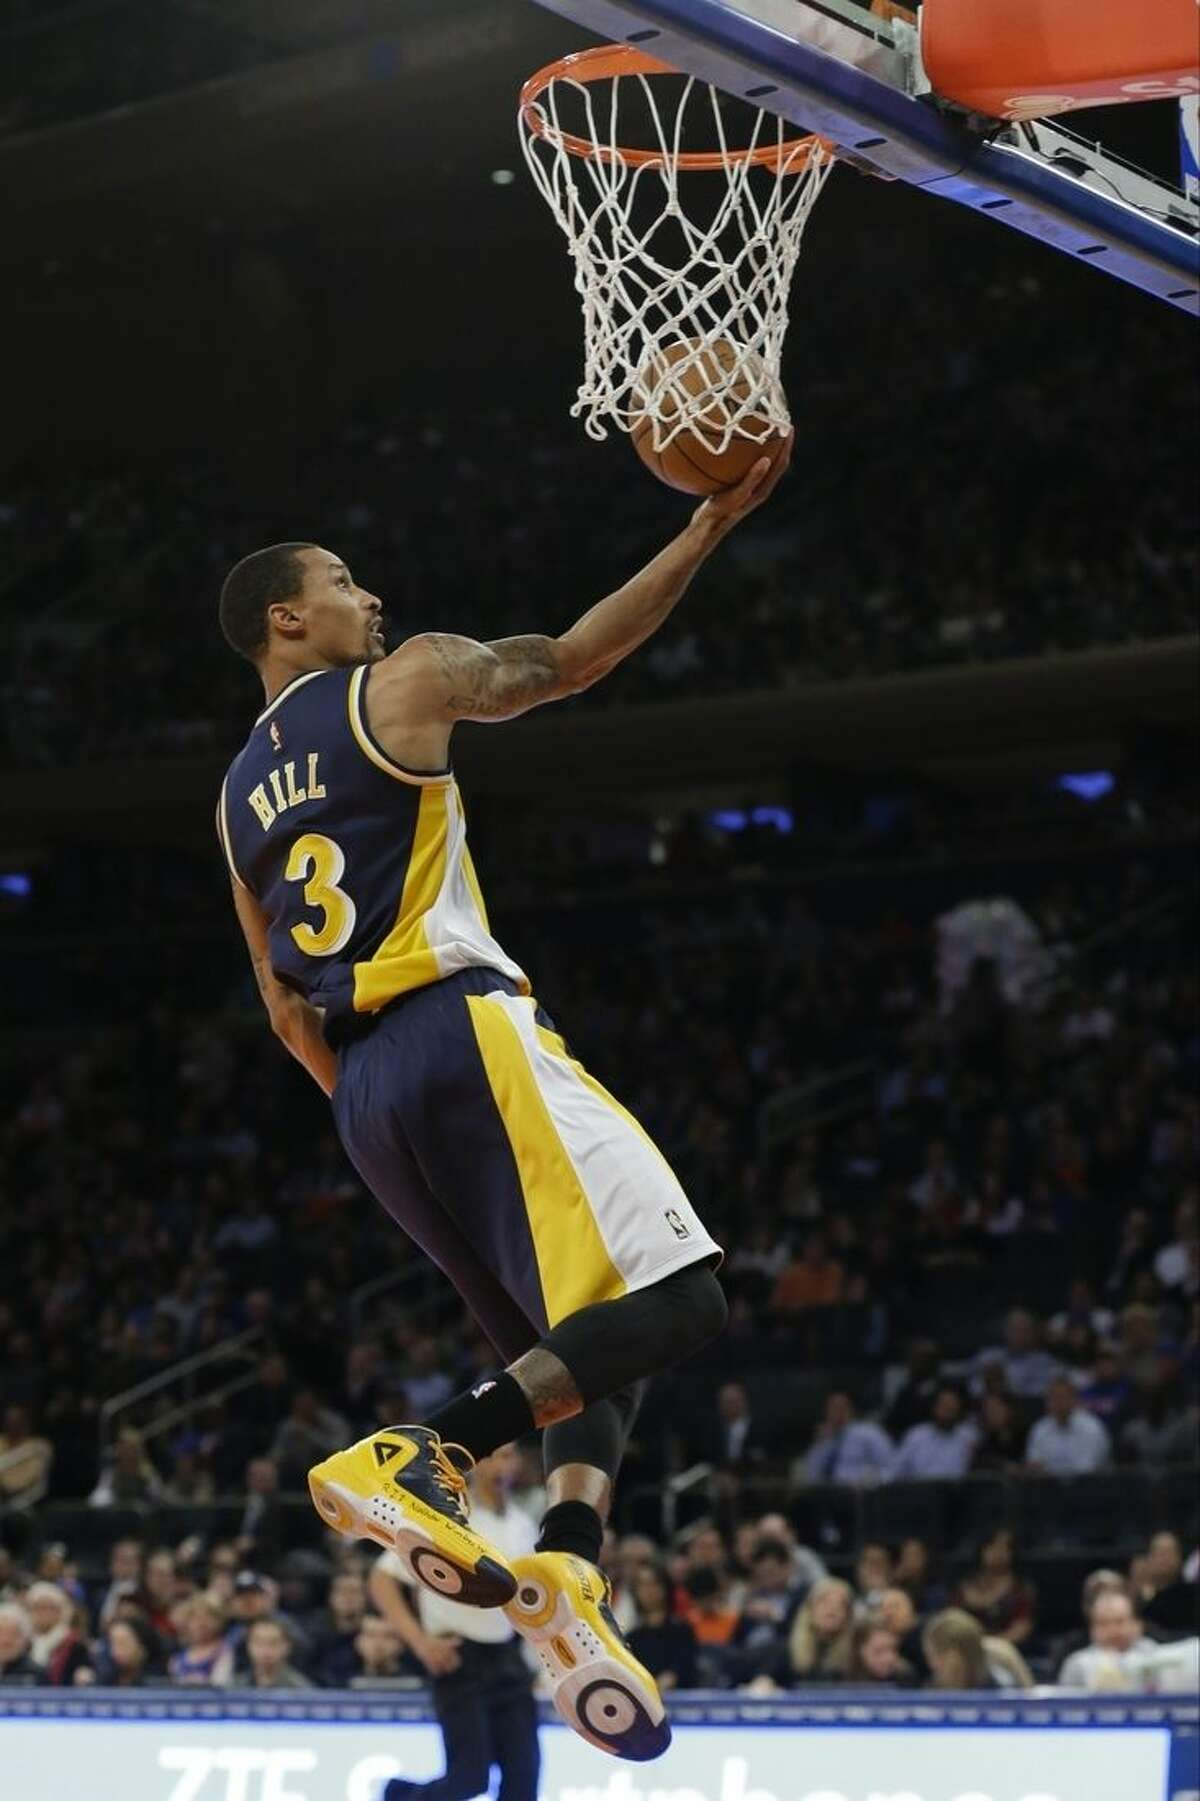 Indiana Pacers' George Hill (3) drives to the basket during the second half of an NBA basketball game against the New York Knicks Wednesday, April 8, 2015, in New York. (AP Photo/Frank Franklin II)